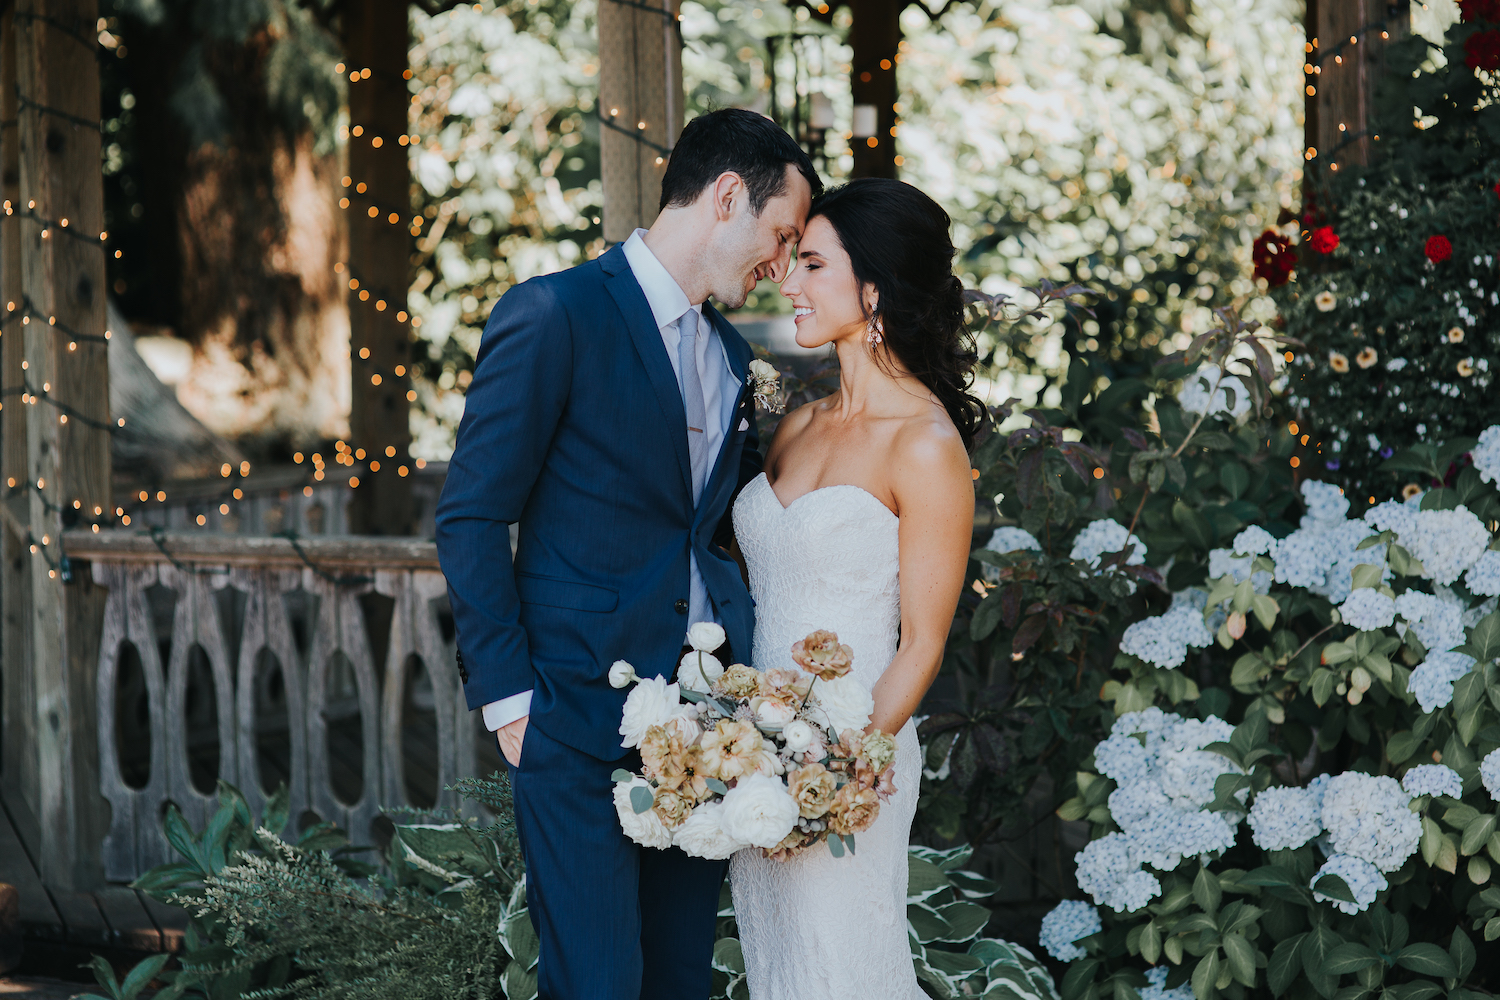 Wild Bloom Floral - Rachel Birkhofer Photography - Jessica and Phil - Real Wedding - Seattle 15.jpeg